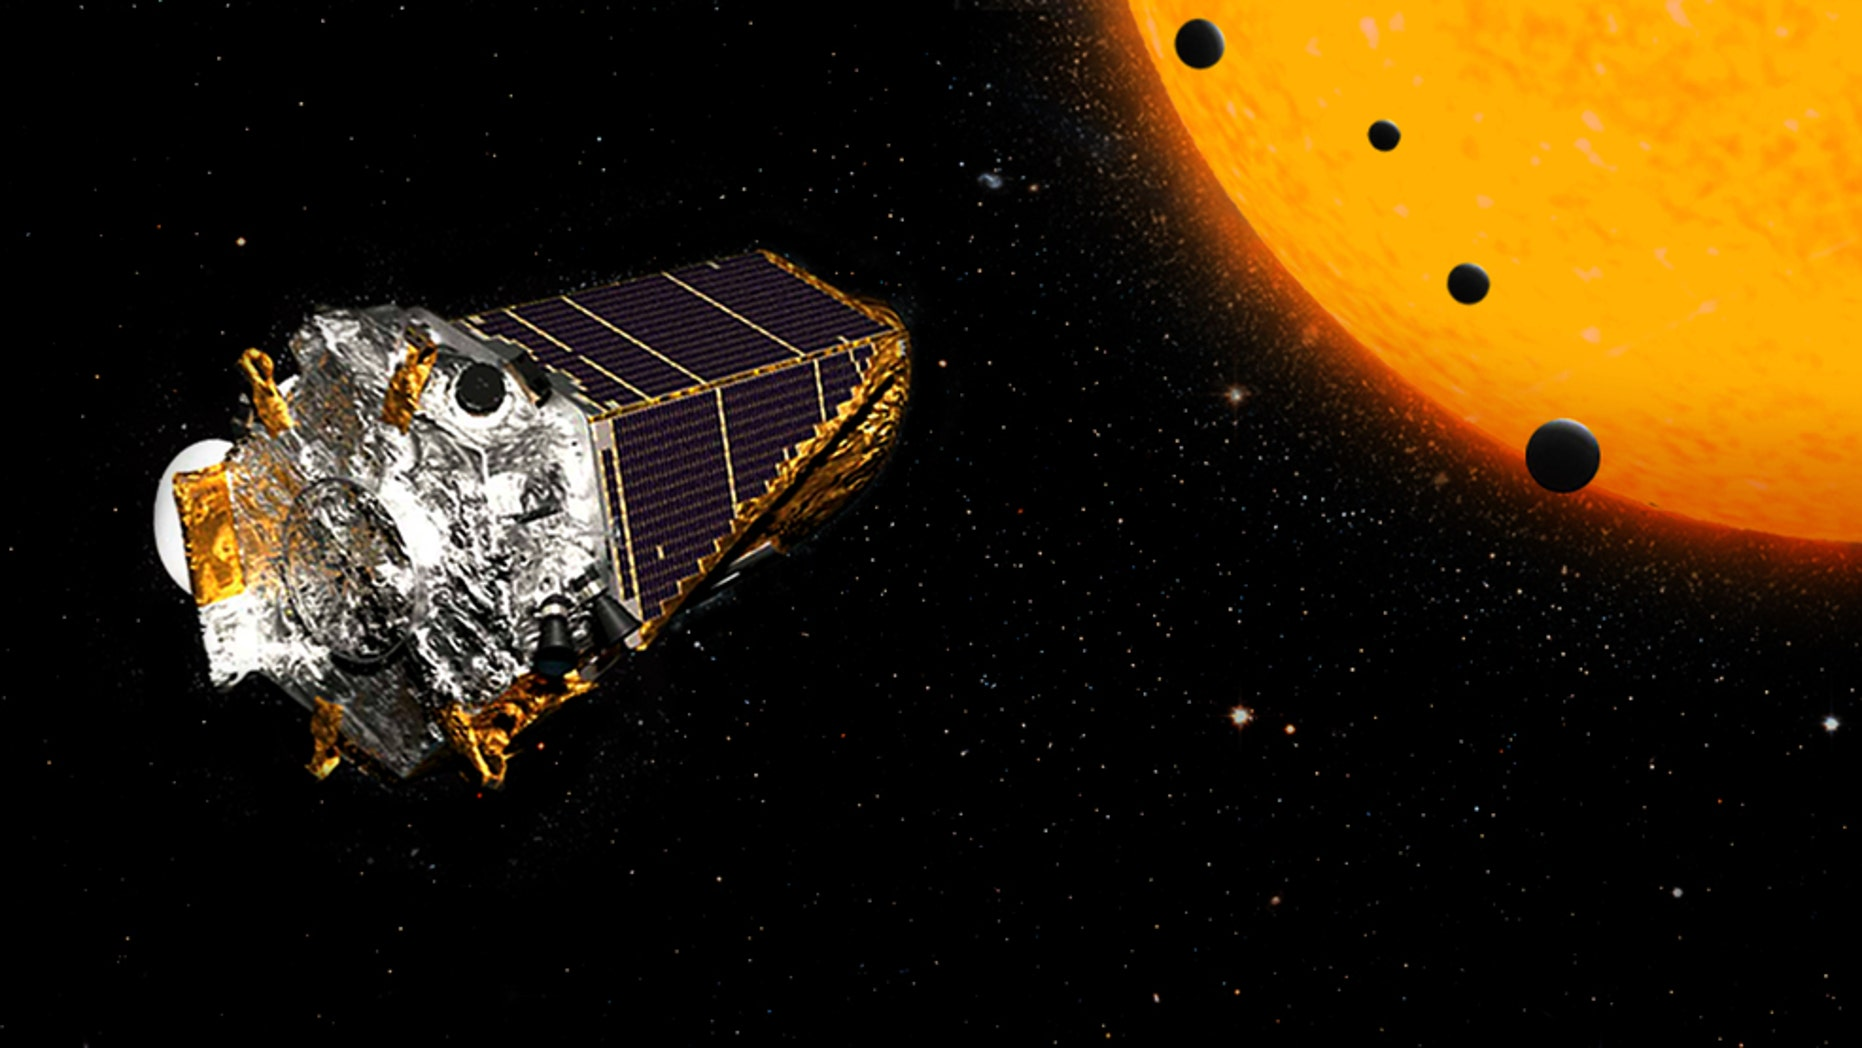 NASA's Kepler Space Telescope has gazed at more than 150,000 stars and continues to transmit back data that leads to important discoveries of celestial objects in our galaxy, including first-time observations of planets outside our solar system.  (Credits: NASA/Ames Research Center/Wendy Stenzel)